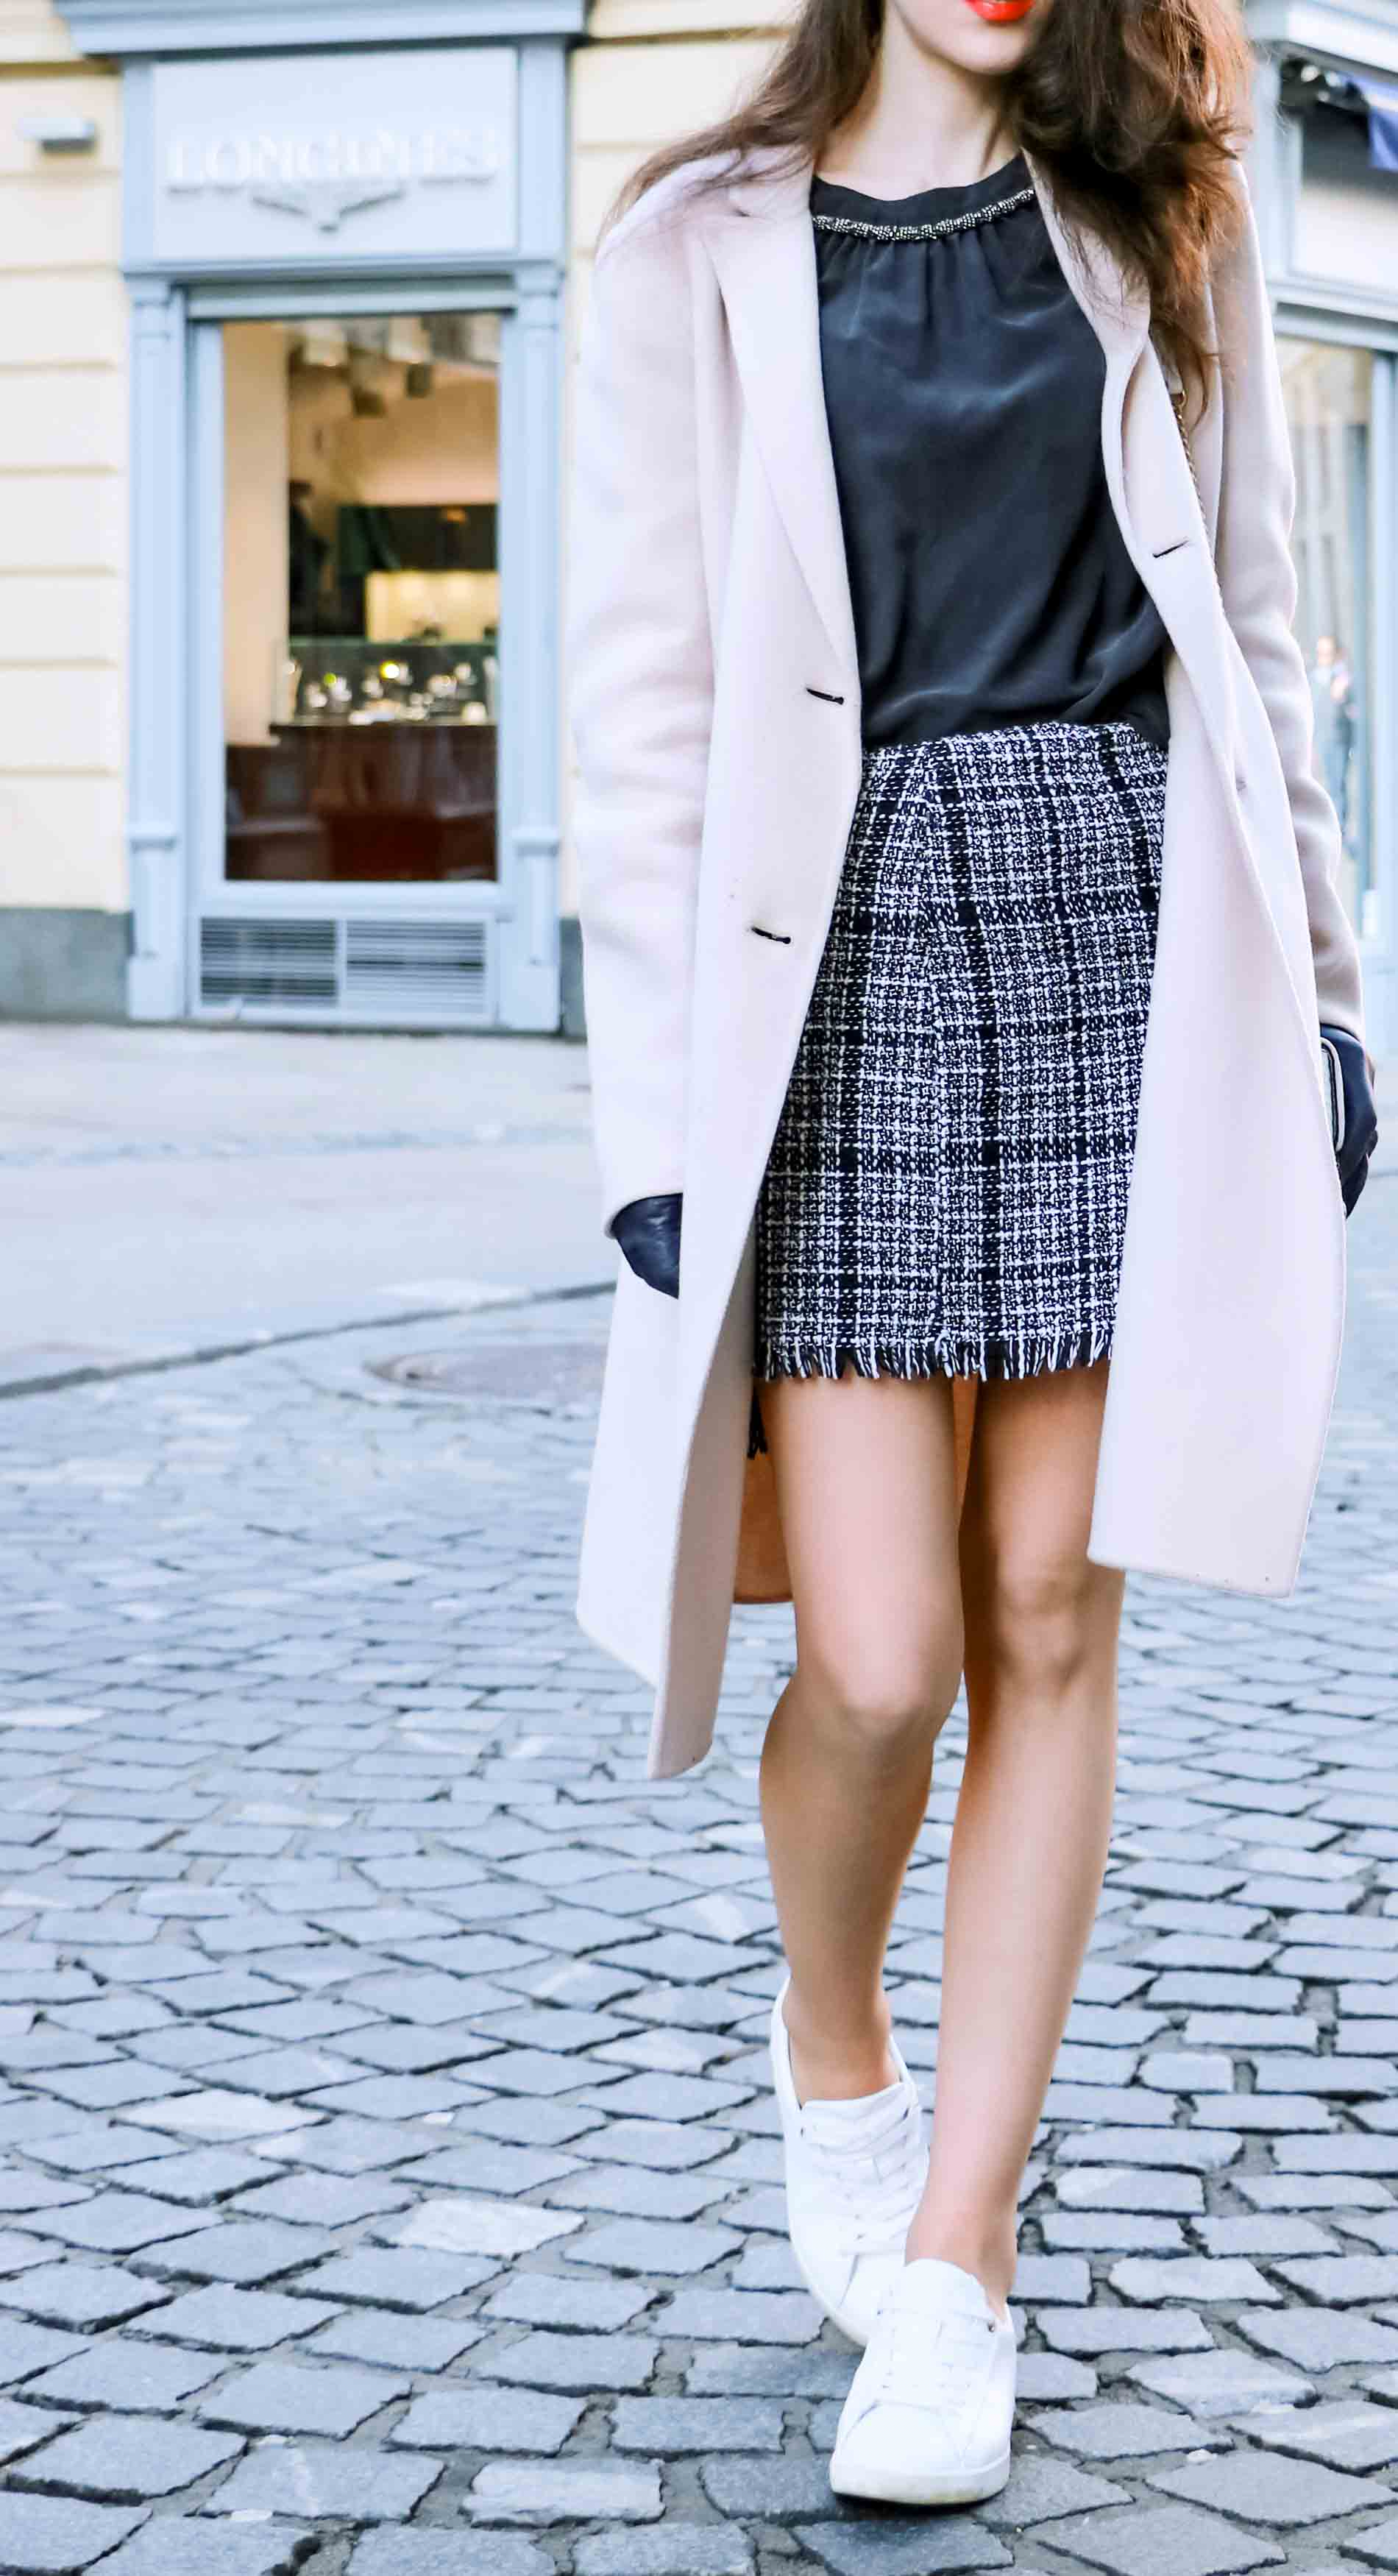 Fashion Blogger Veronika Lipar of Brunette from Wall Street dressed in white sneakers from Diesel, black and white plaid tweed mini skirt from Storets, black silk blouse from Juicy Couture, off-white double breasted wool coat from MaxMara, faux fur headband, white shoulder bag with gold chain strap, blue leather gloves walking down the street in Ljubljana